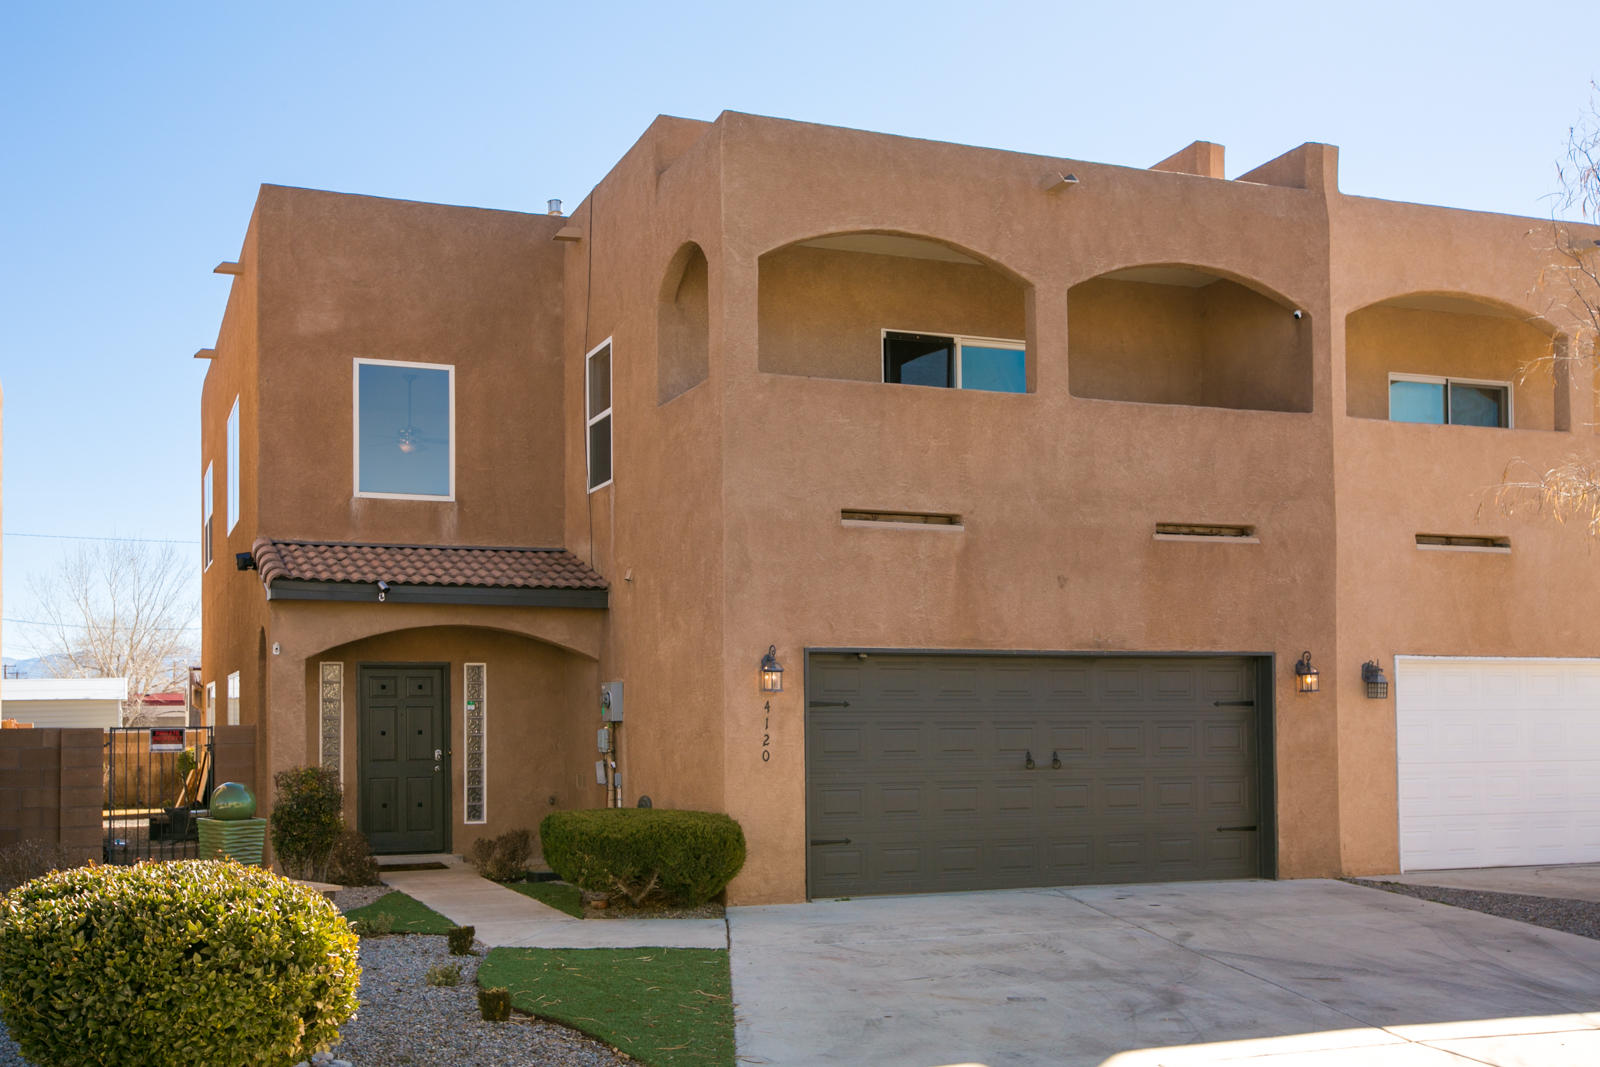 4120 NW Ojos Negros Drive, Northwest Albuquerque and Northwest Heights, New Mexico